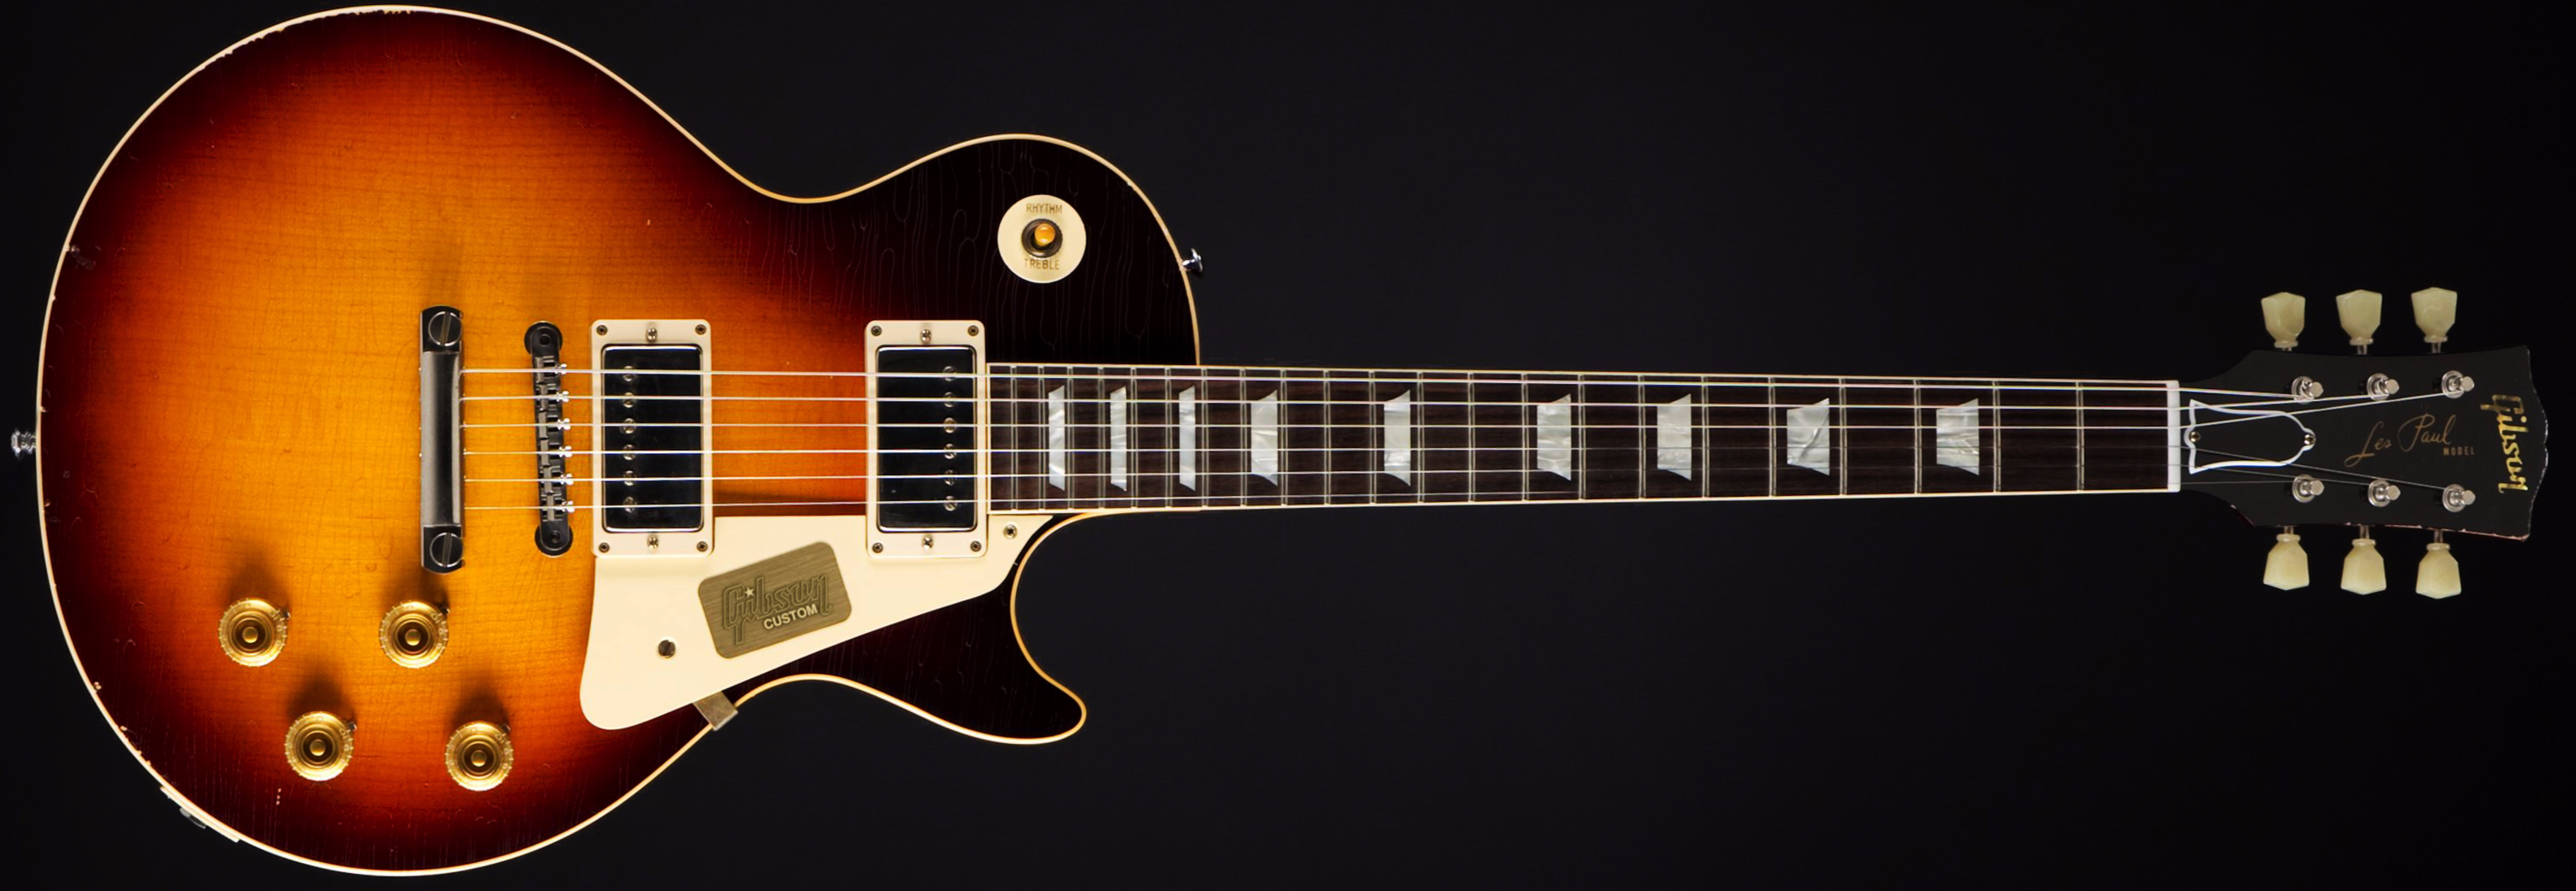 Gibson True Historic 1958 Les Paul Dark Burst Front